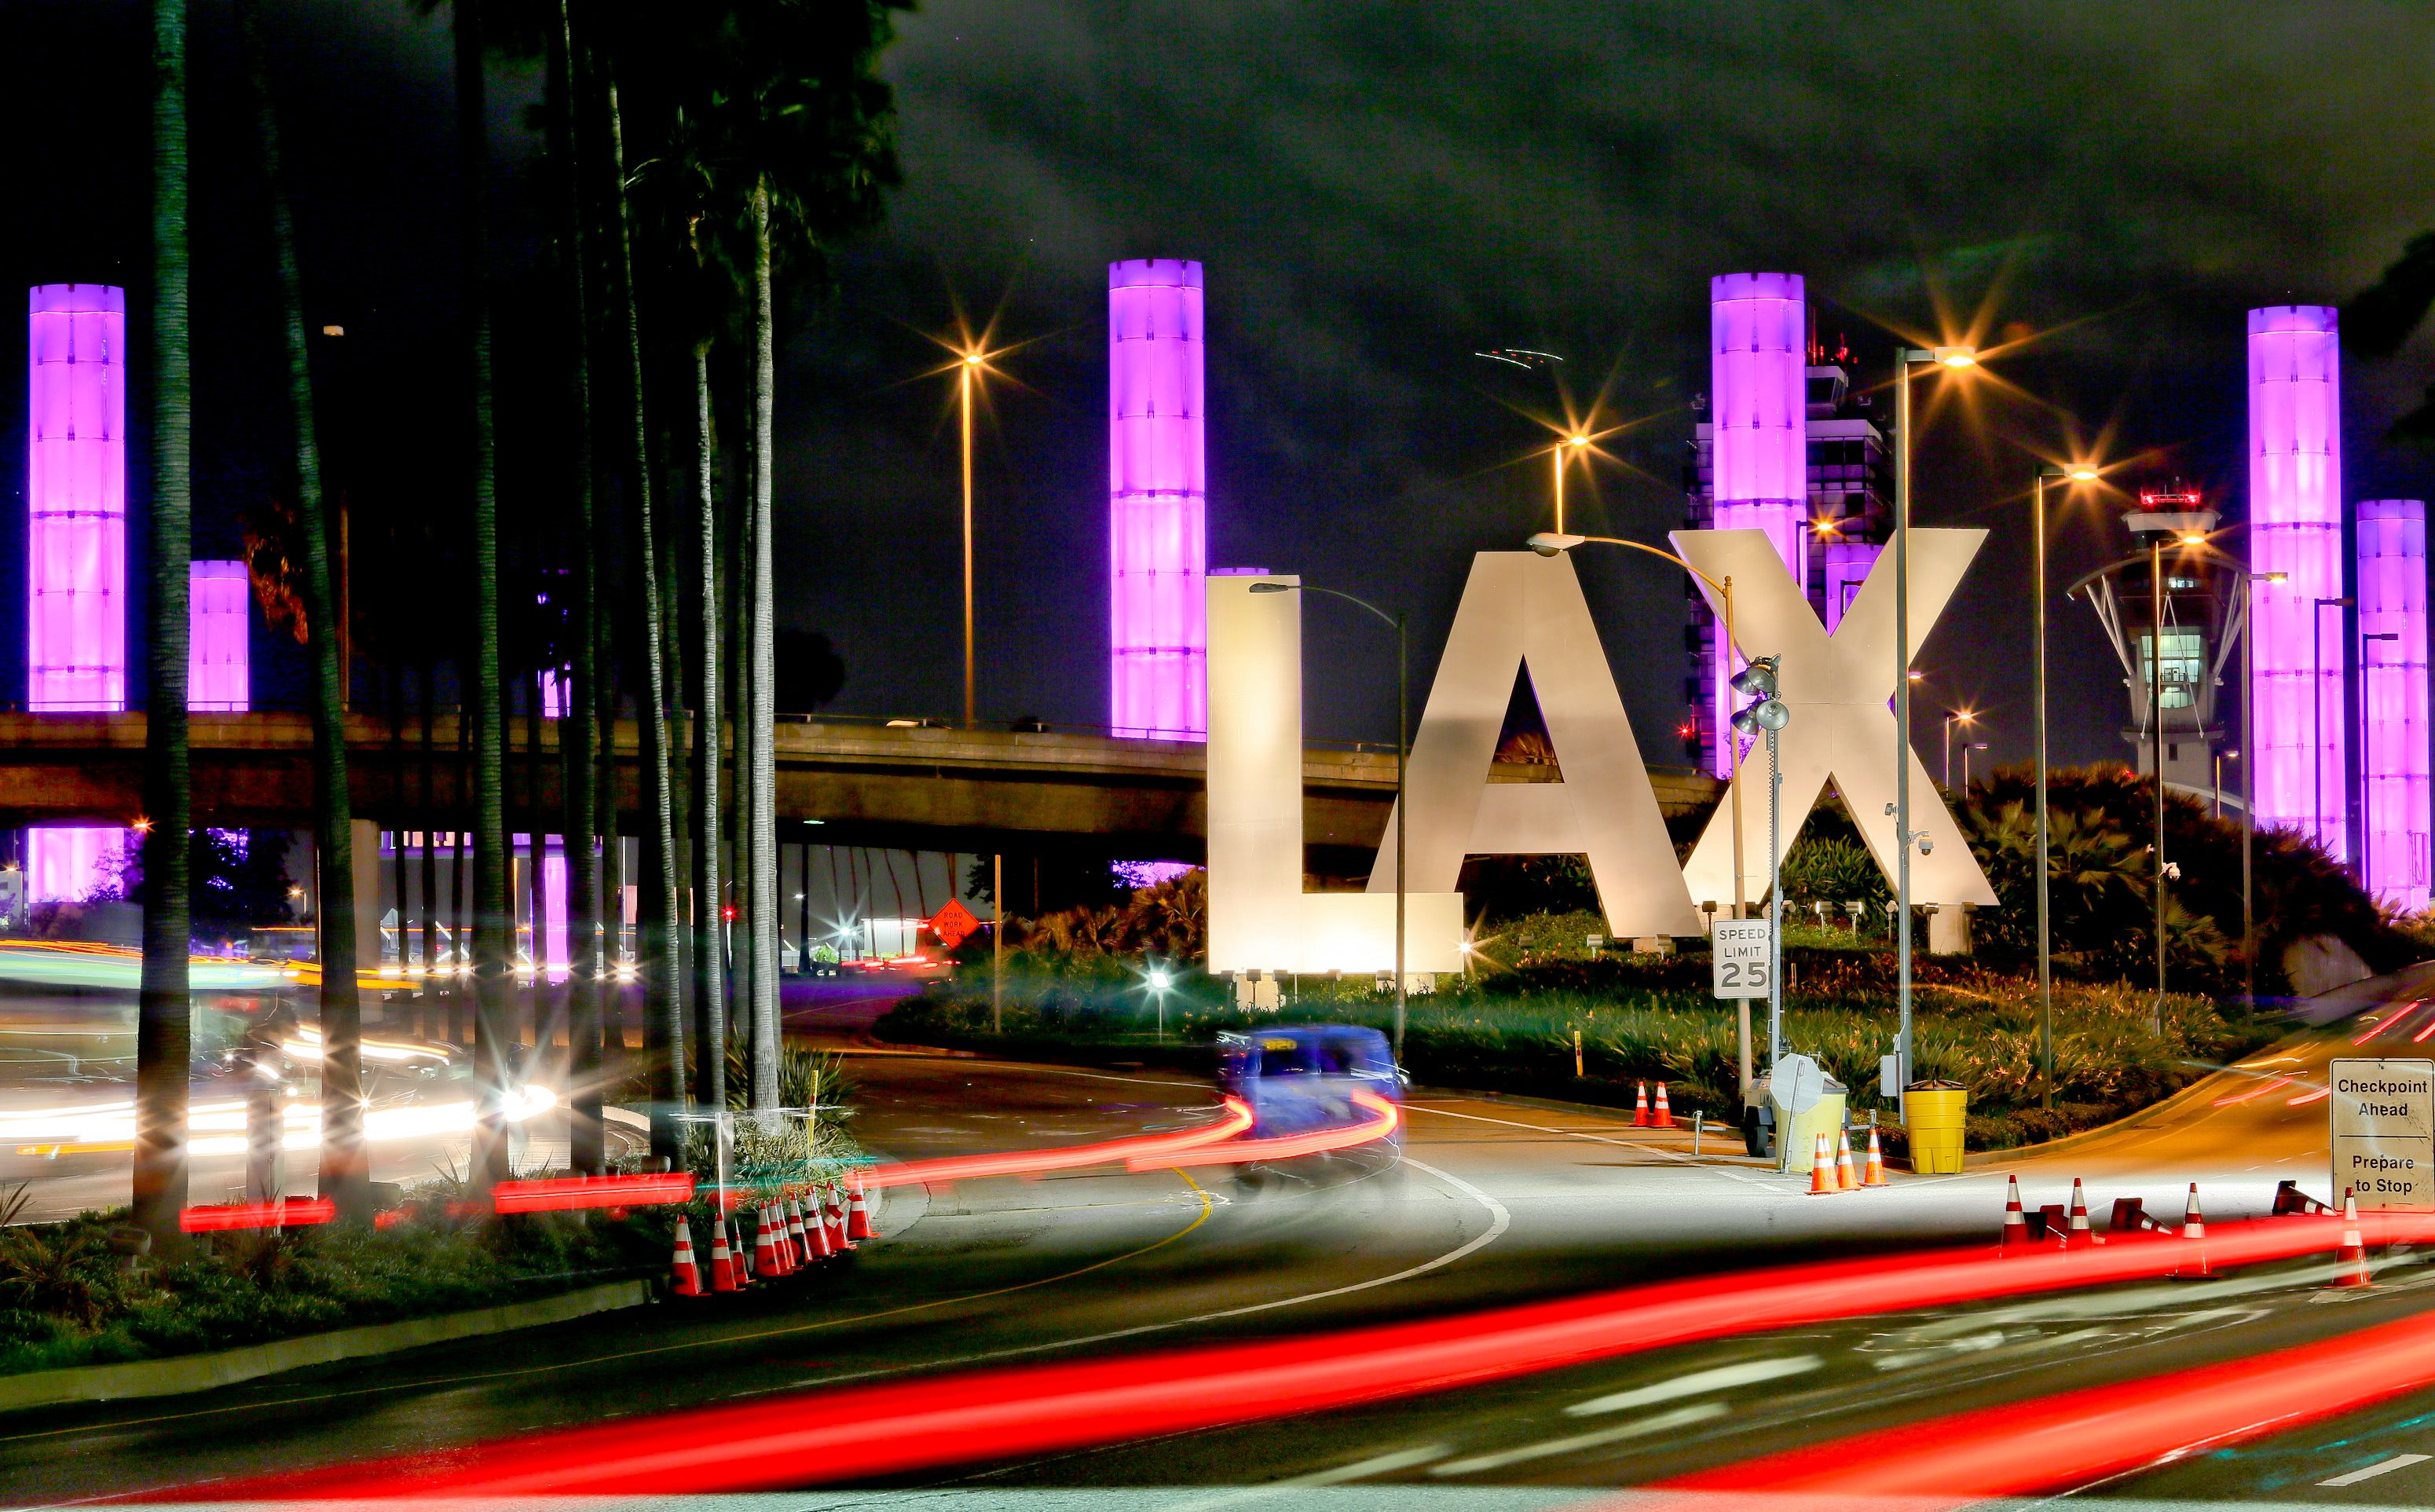 LAX airport is getting a $14-billion makeover and new 'happy face' machines to rate satisfaction